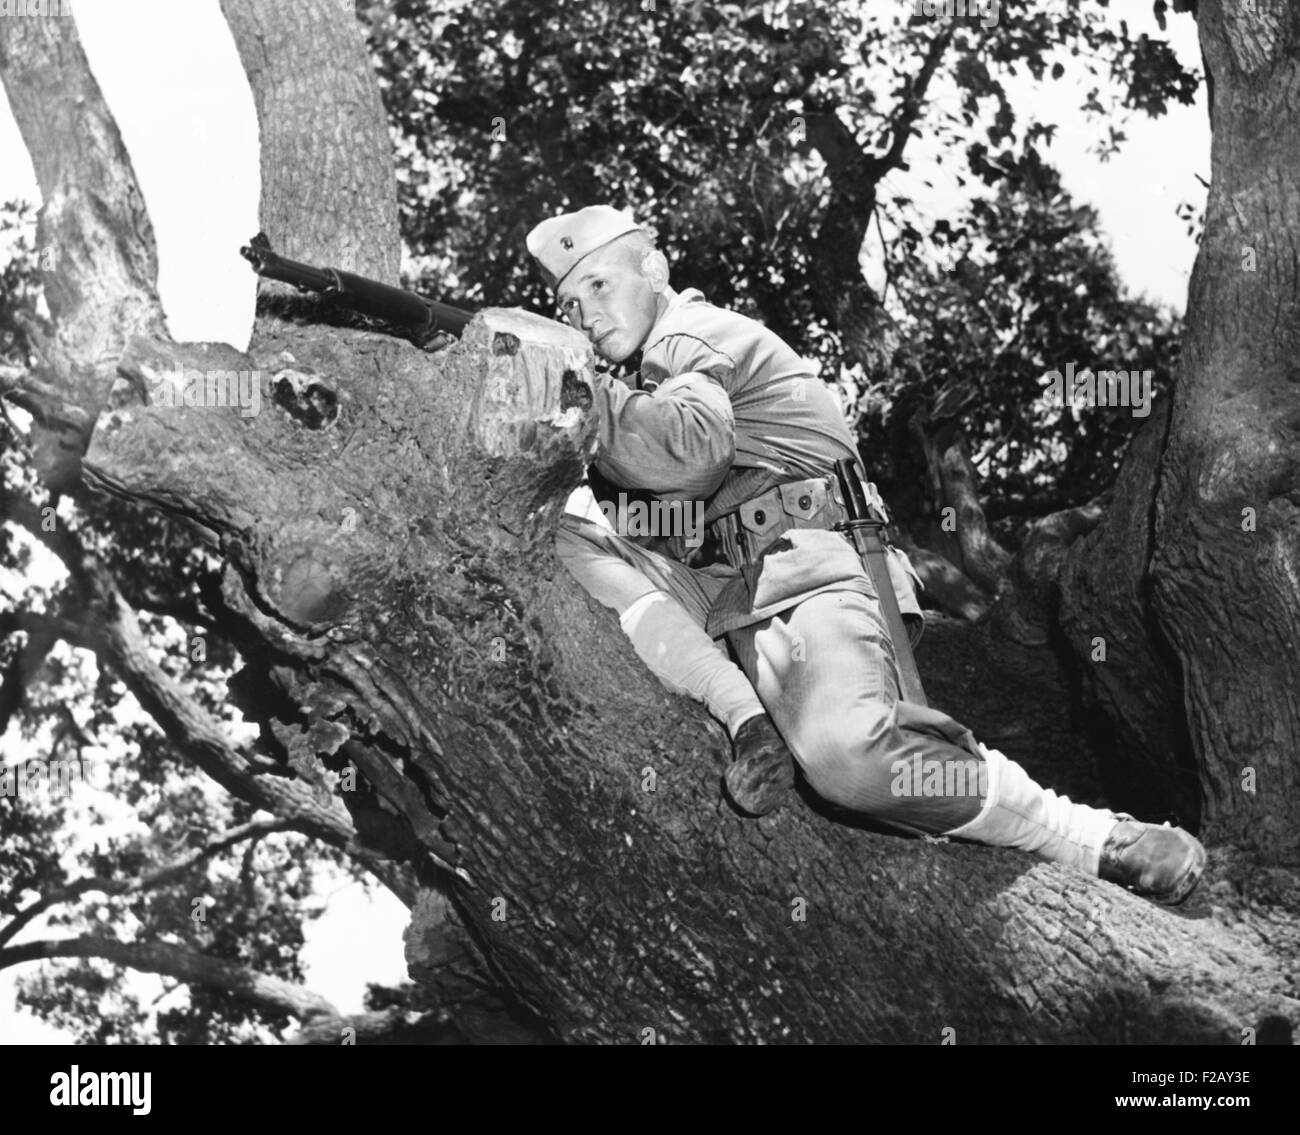 Stephen P. Hopkins, son of Harry Hopkins, in basic training at Parris Island. He is in a tree with his M-1 rifle. - Stock Image